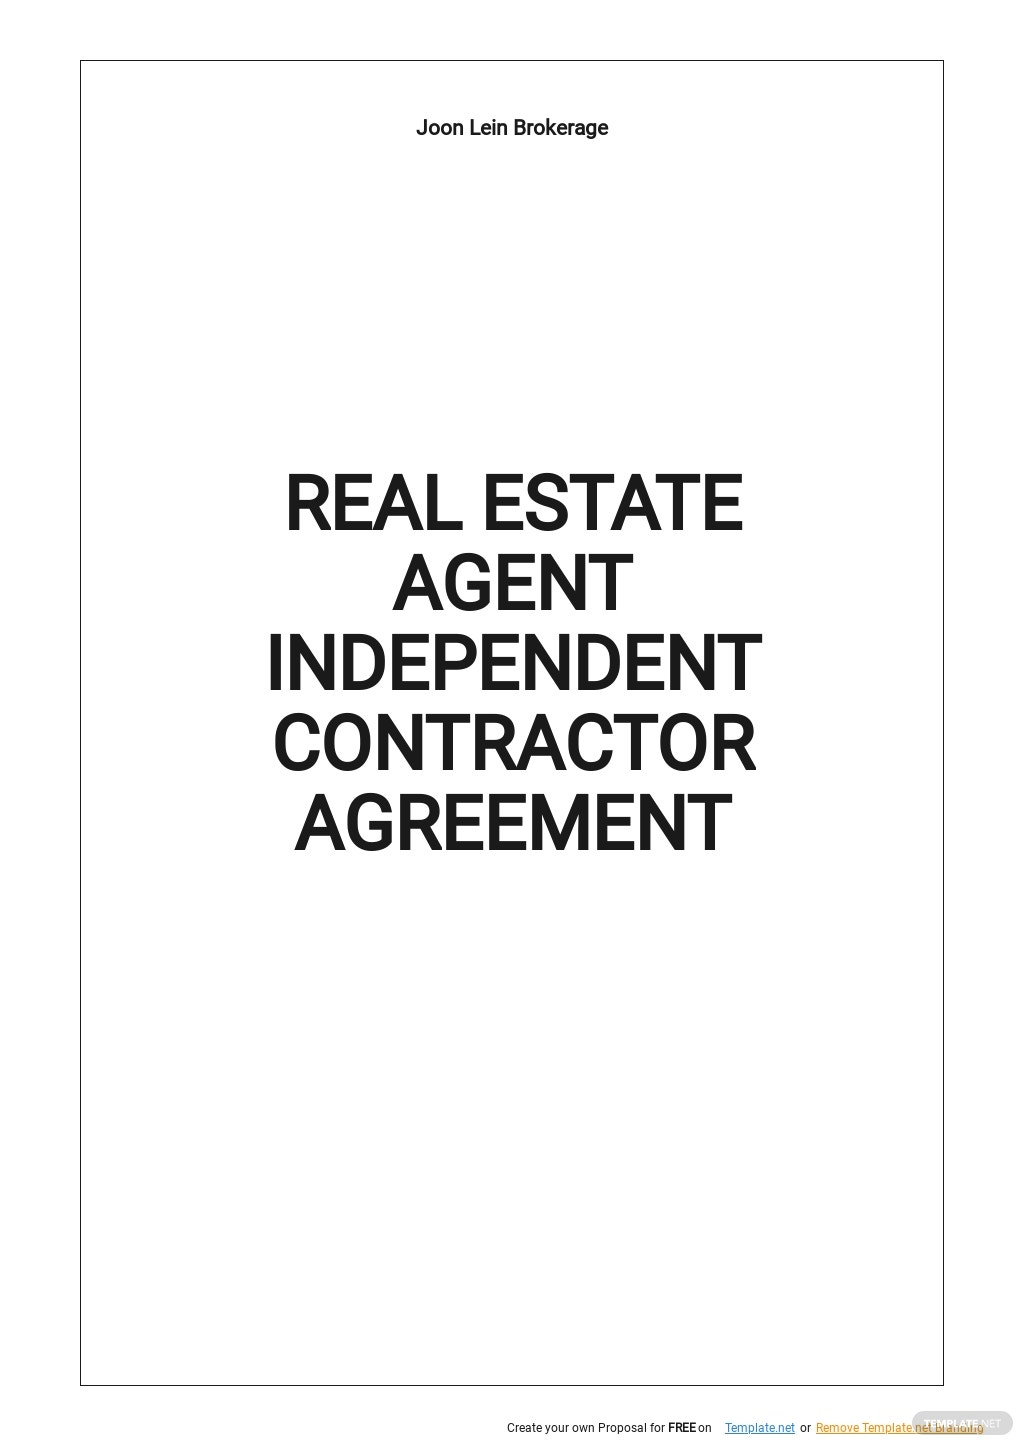 Real Estate Agent Independent Contractor Agreement Template.jpe